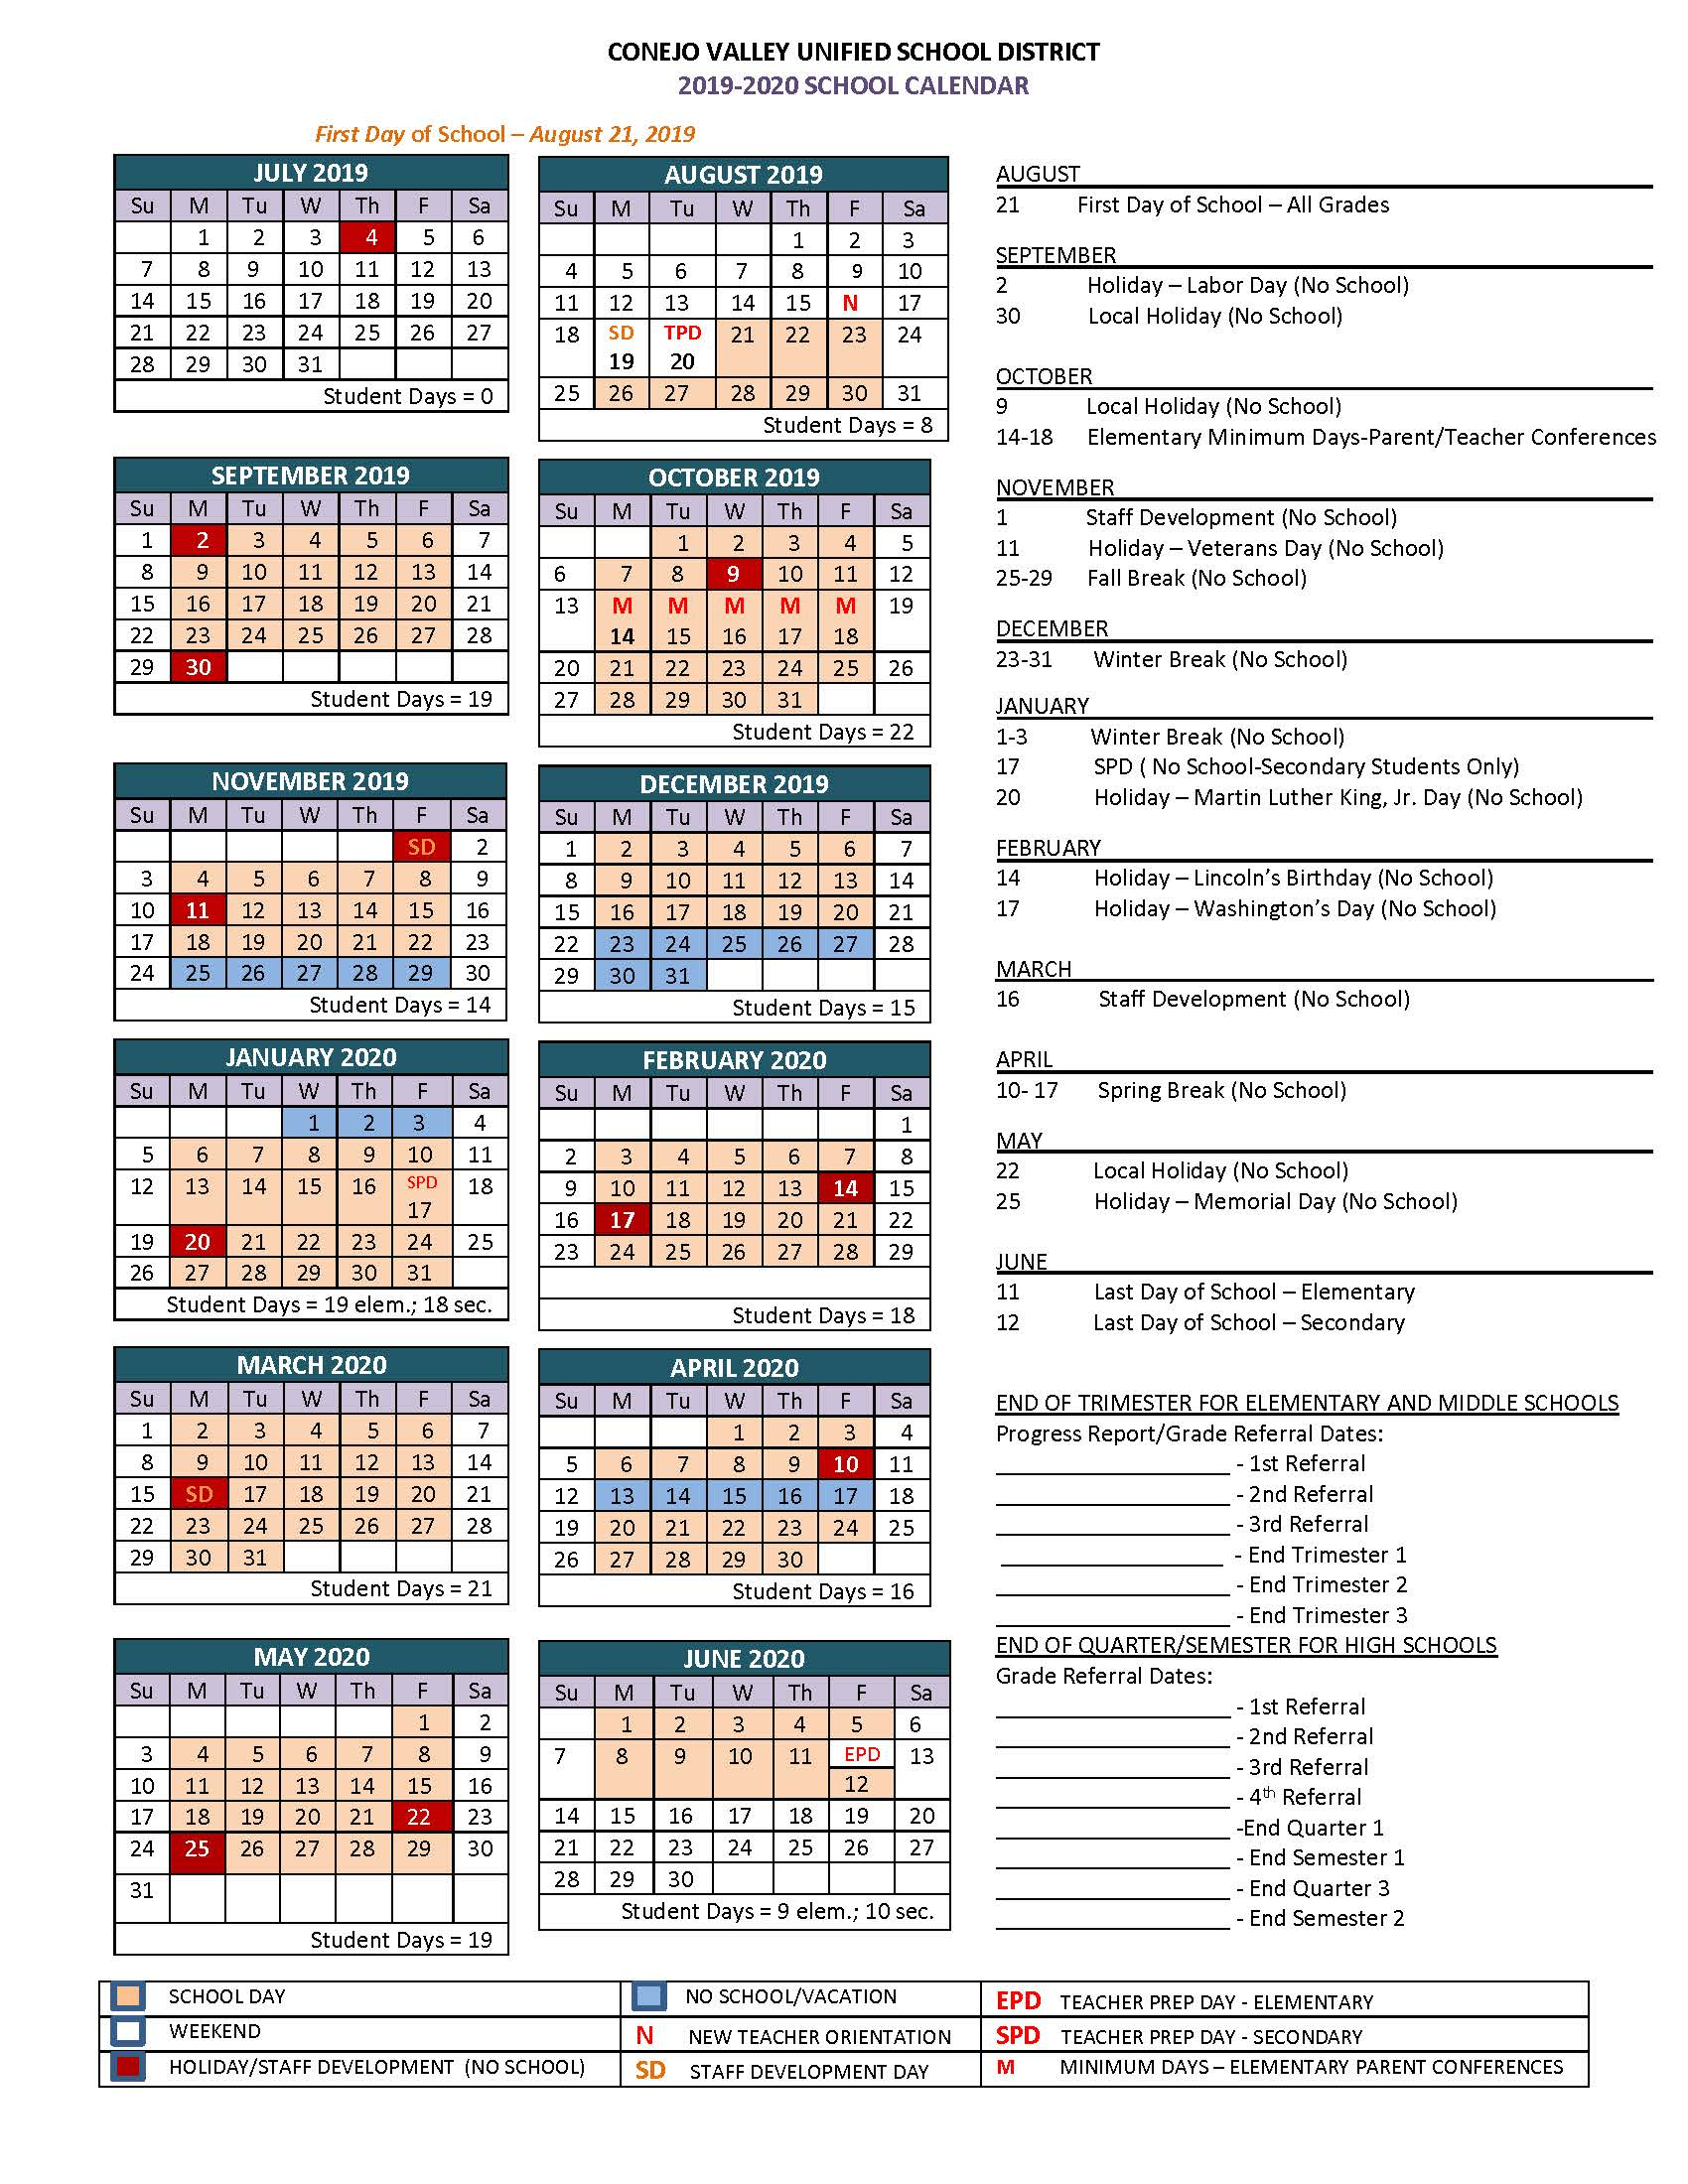 Board Of Education Approves The 2019-2020 Cvusd School Year throughout Board Of Education Calendar